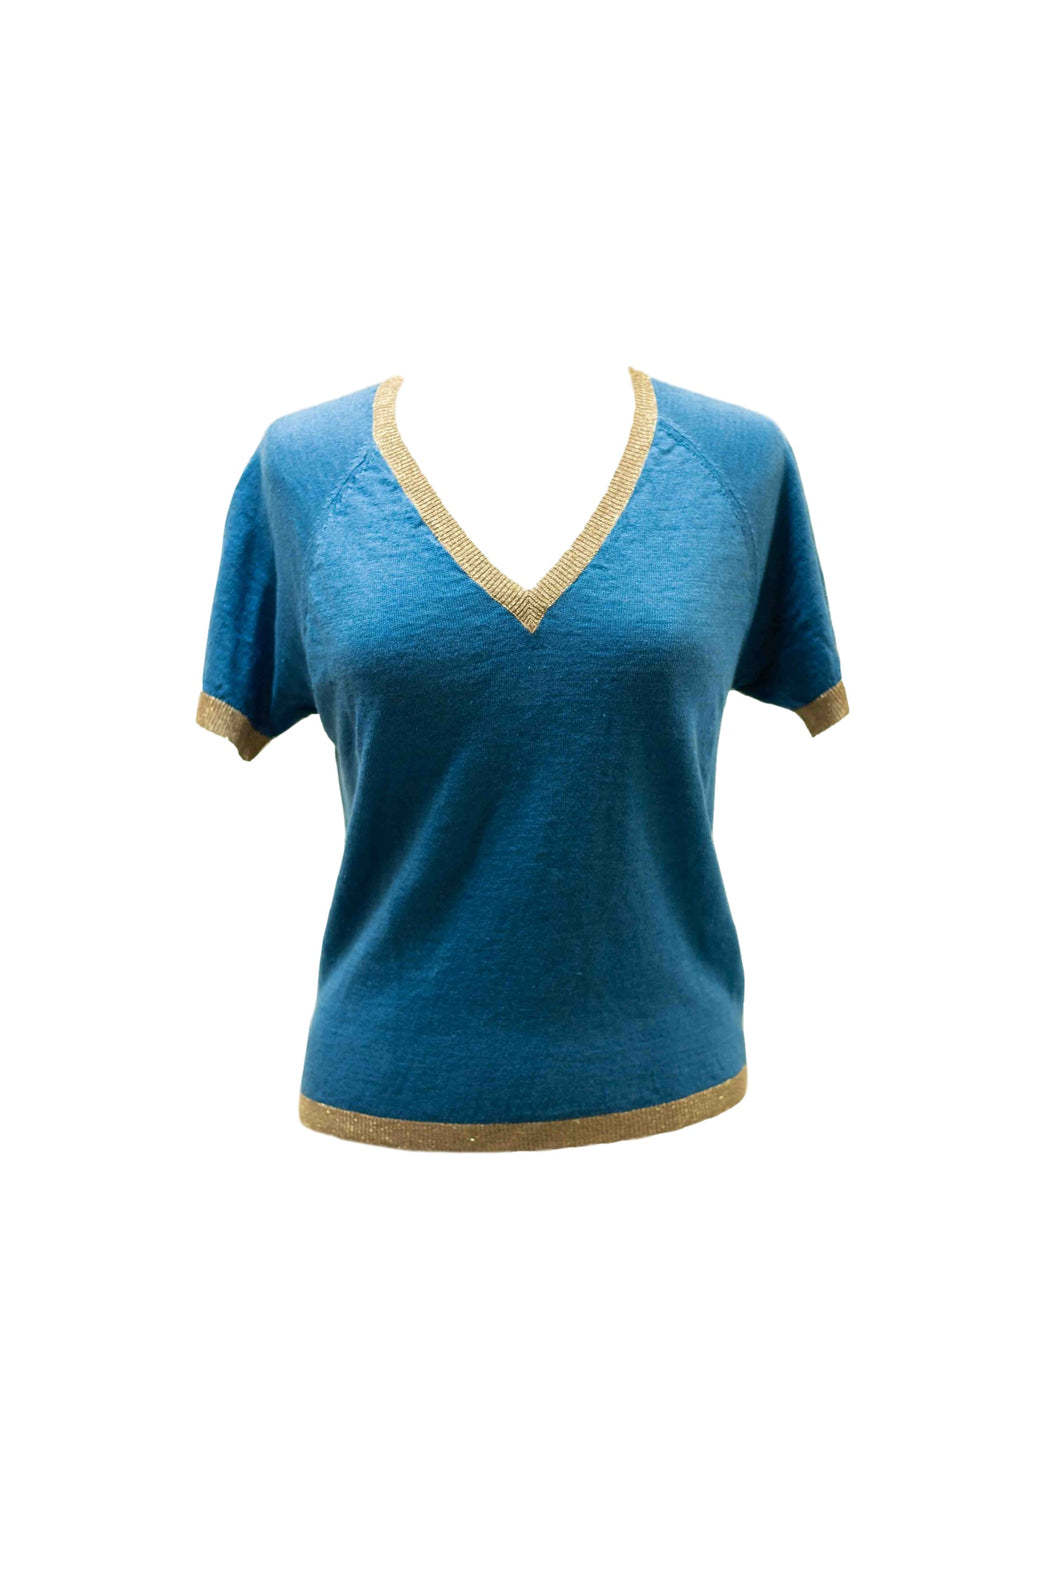 Blue Knit Blouse w/ Gold Trim